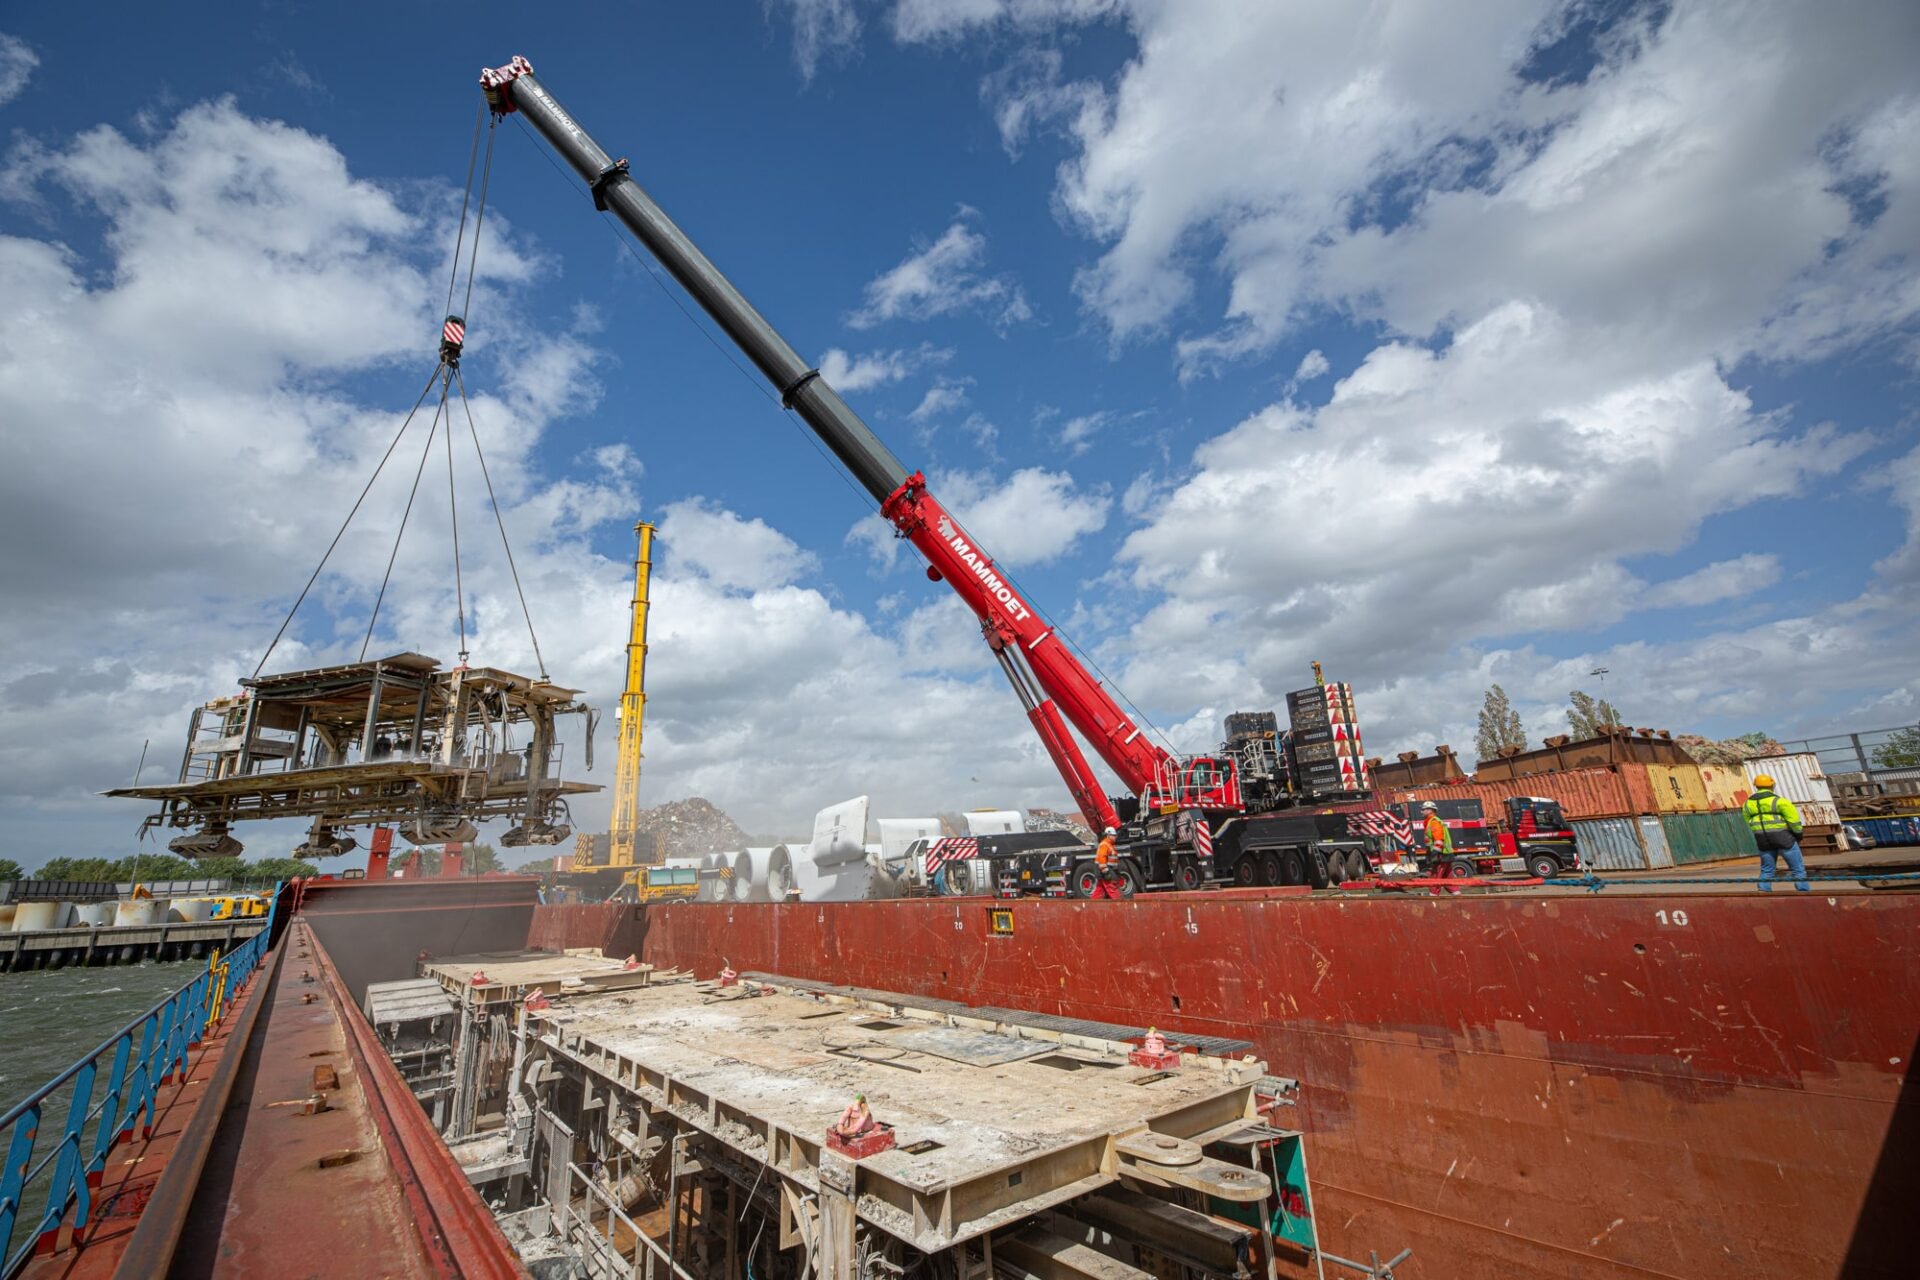 Dismantling a tunnel boring machine